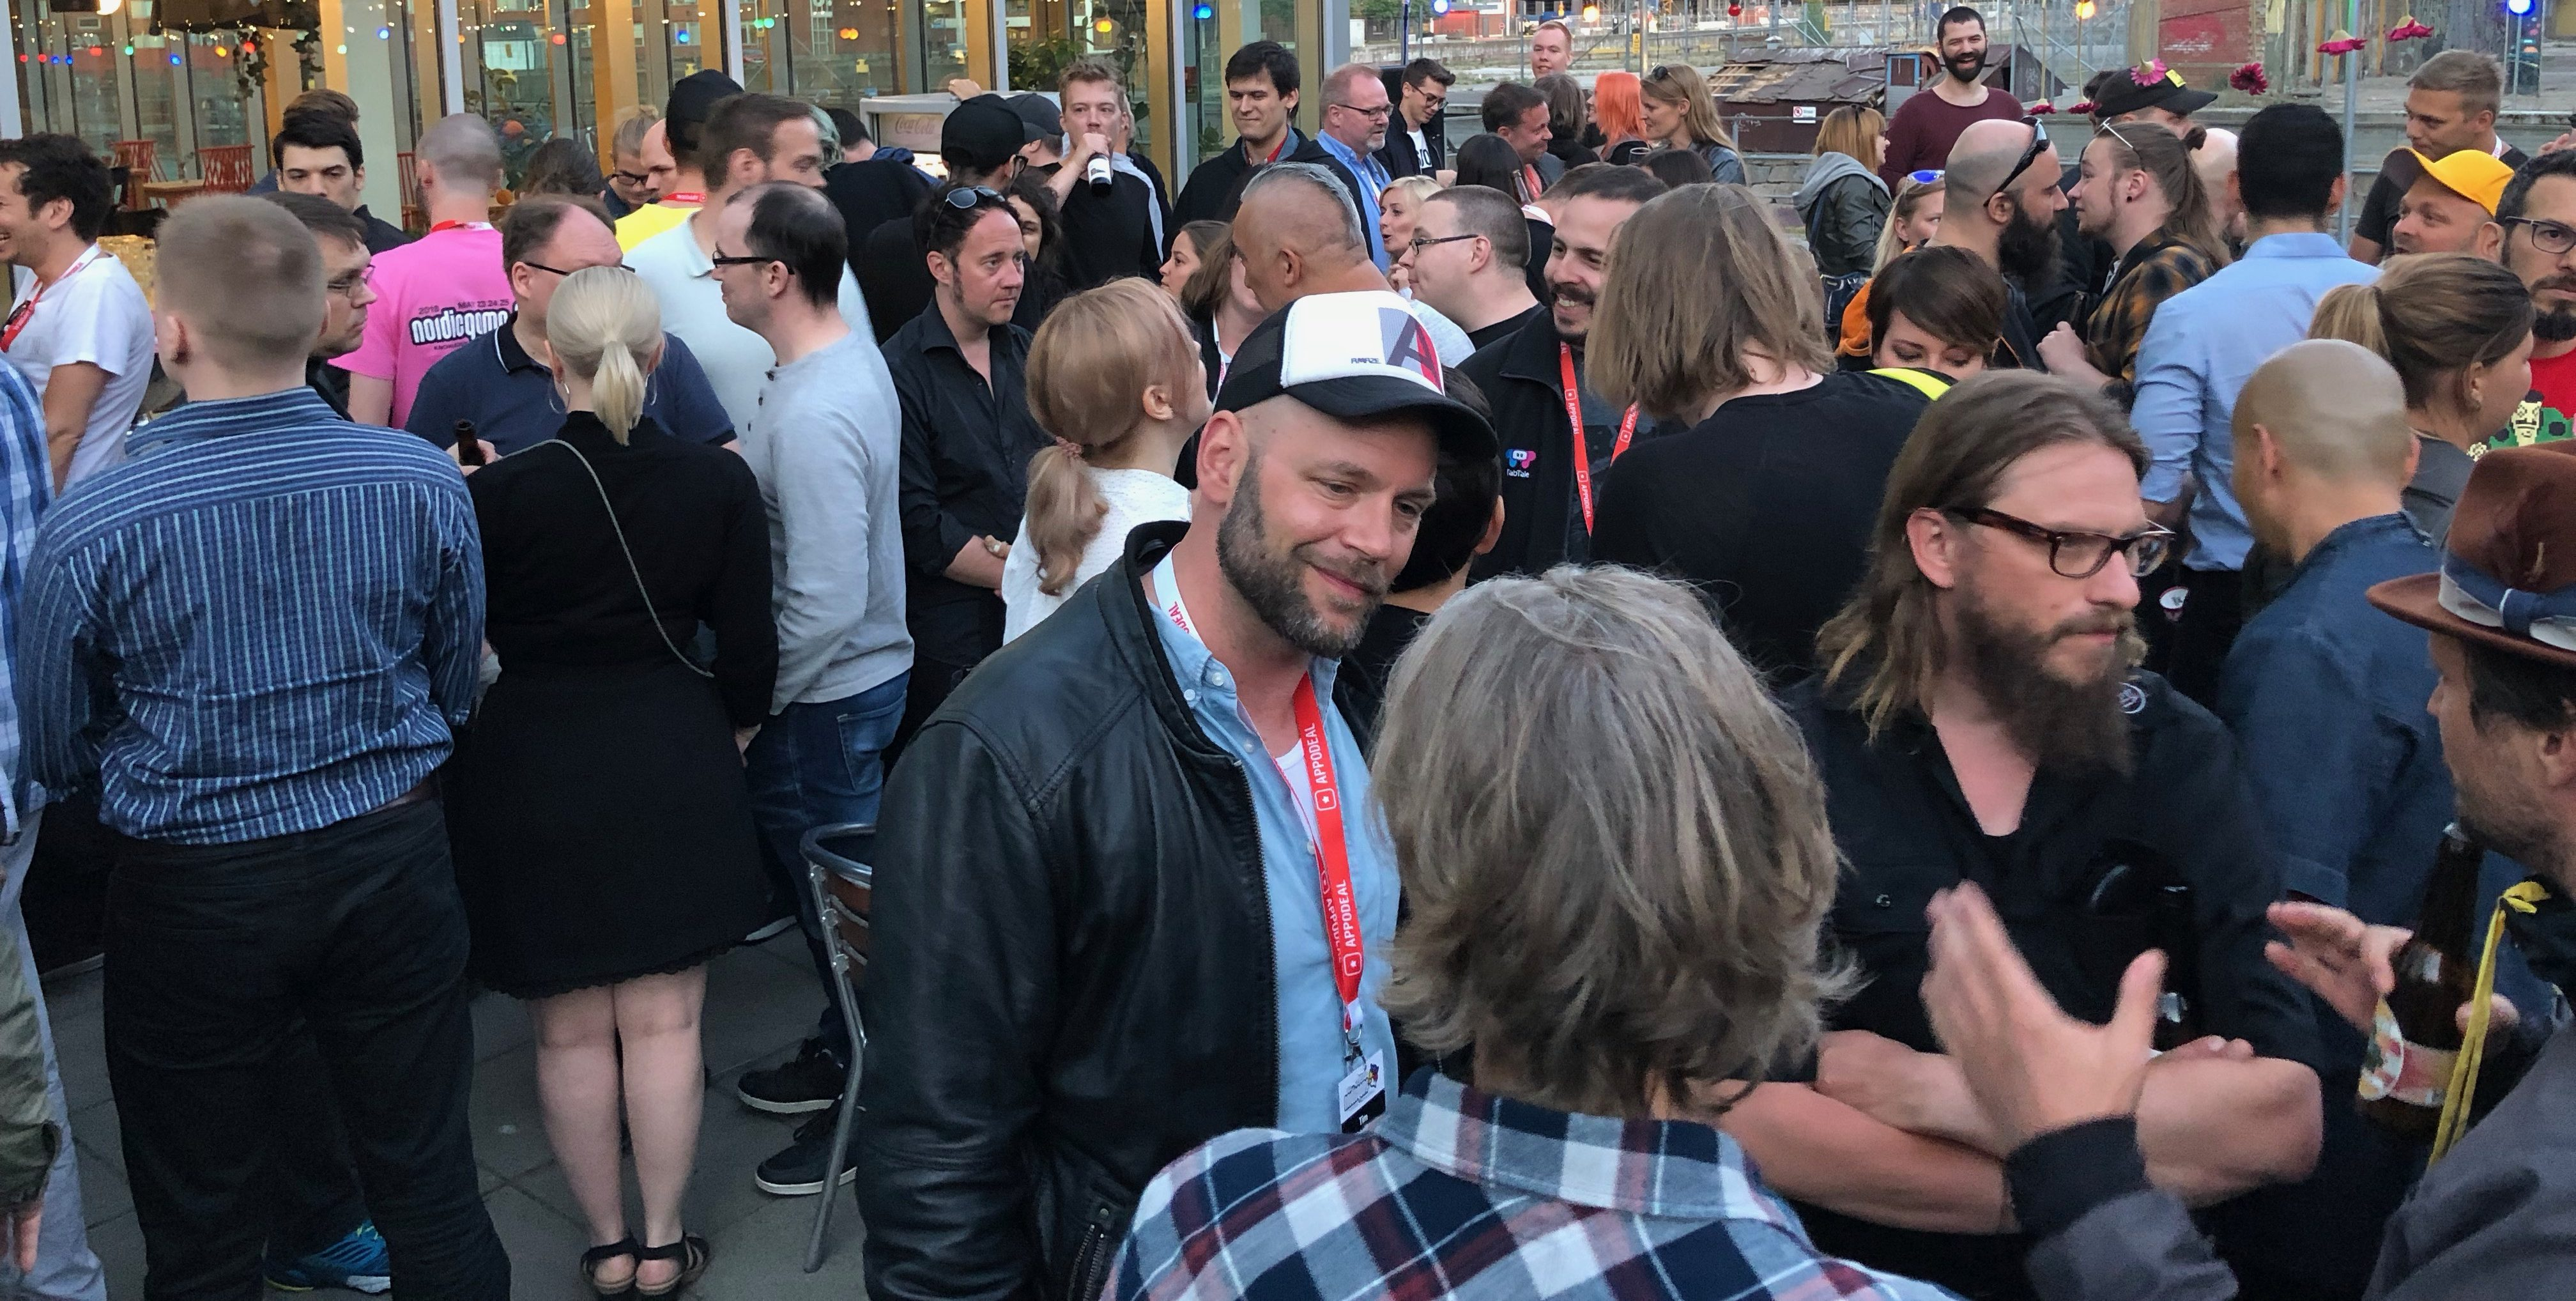 Games Germany reception @ Malmö 2018